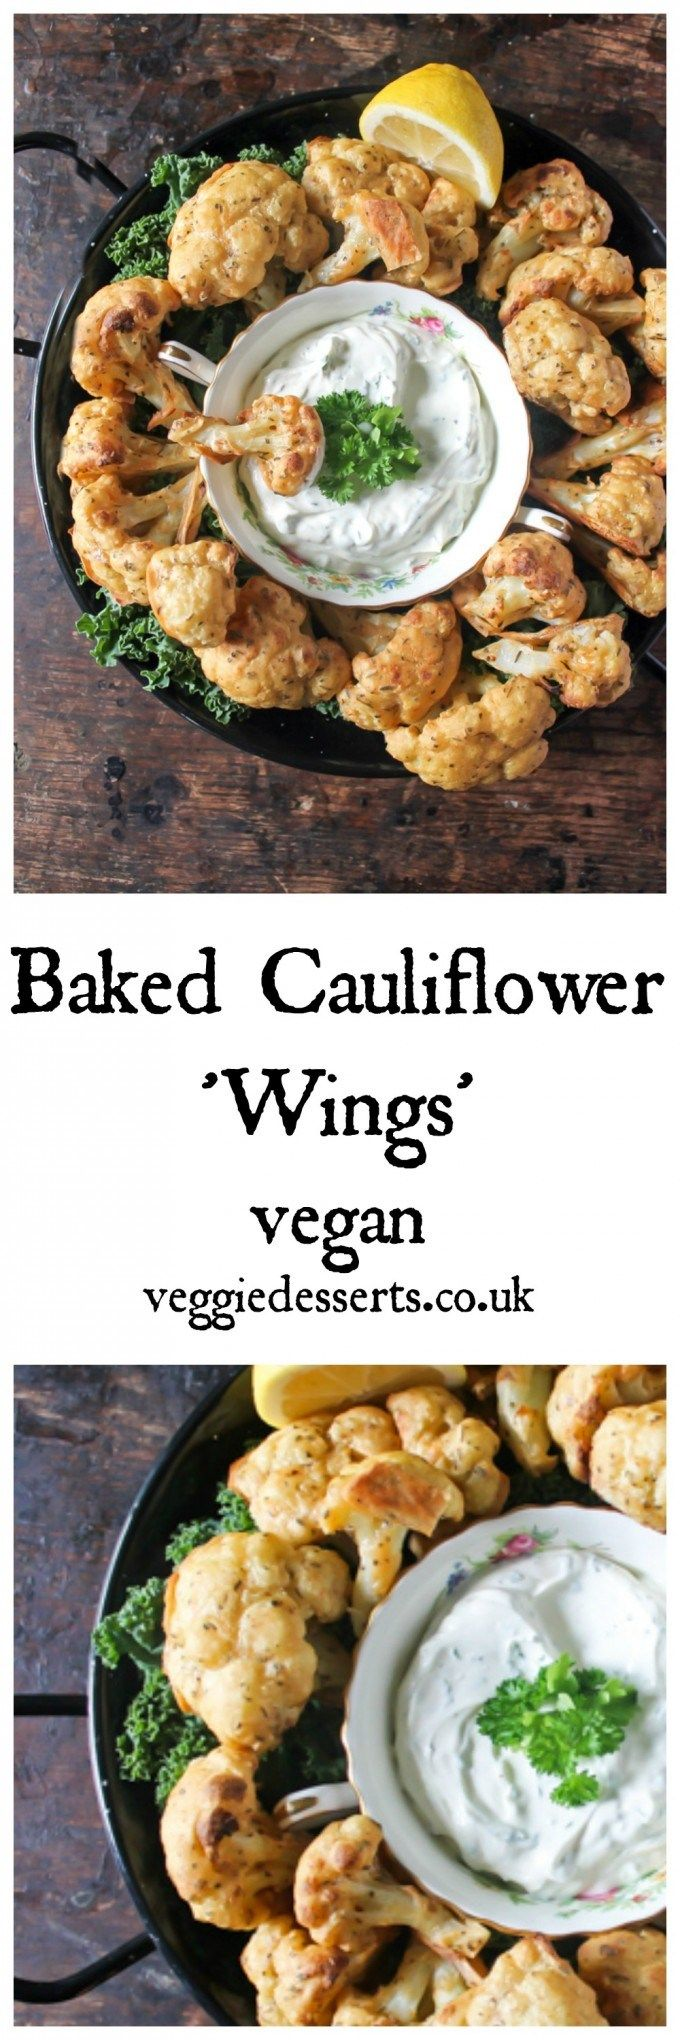 Baked Cauliflower Wings with Herb and Garlic Dip | Veggie Desserts Blog